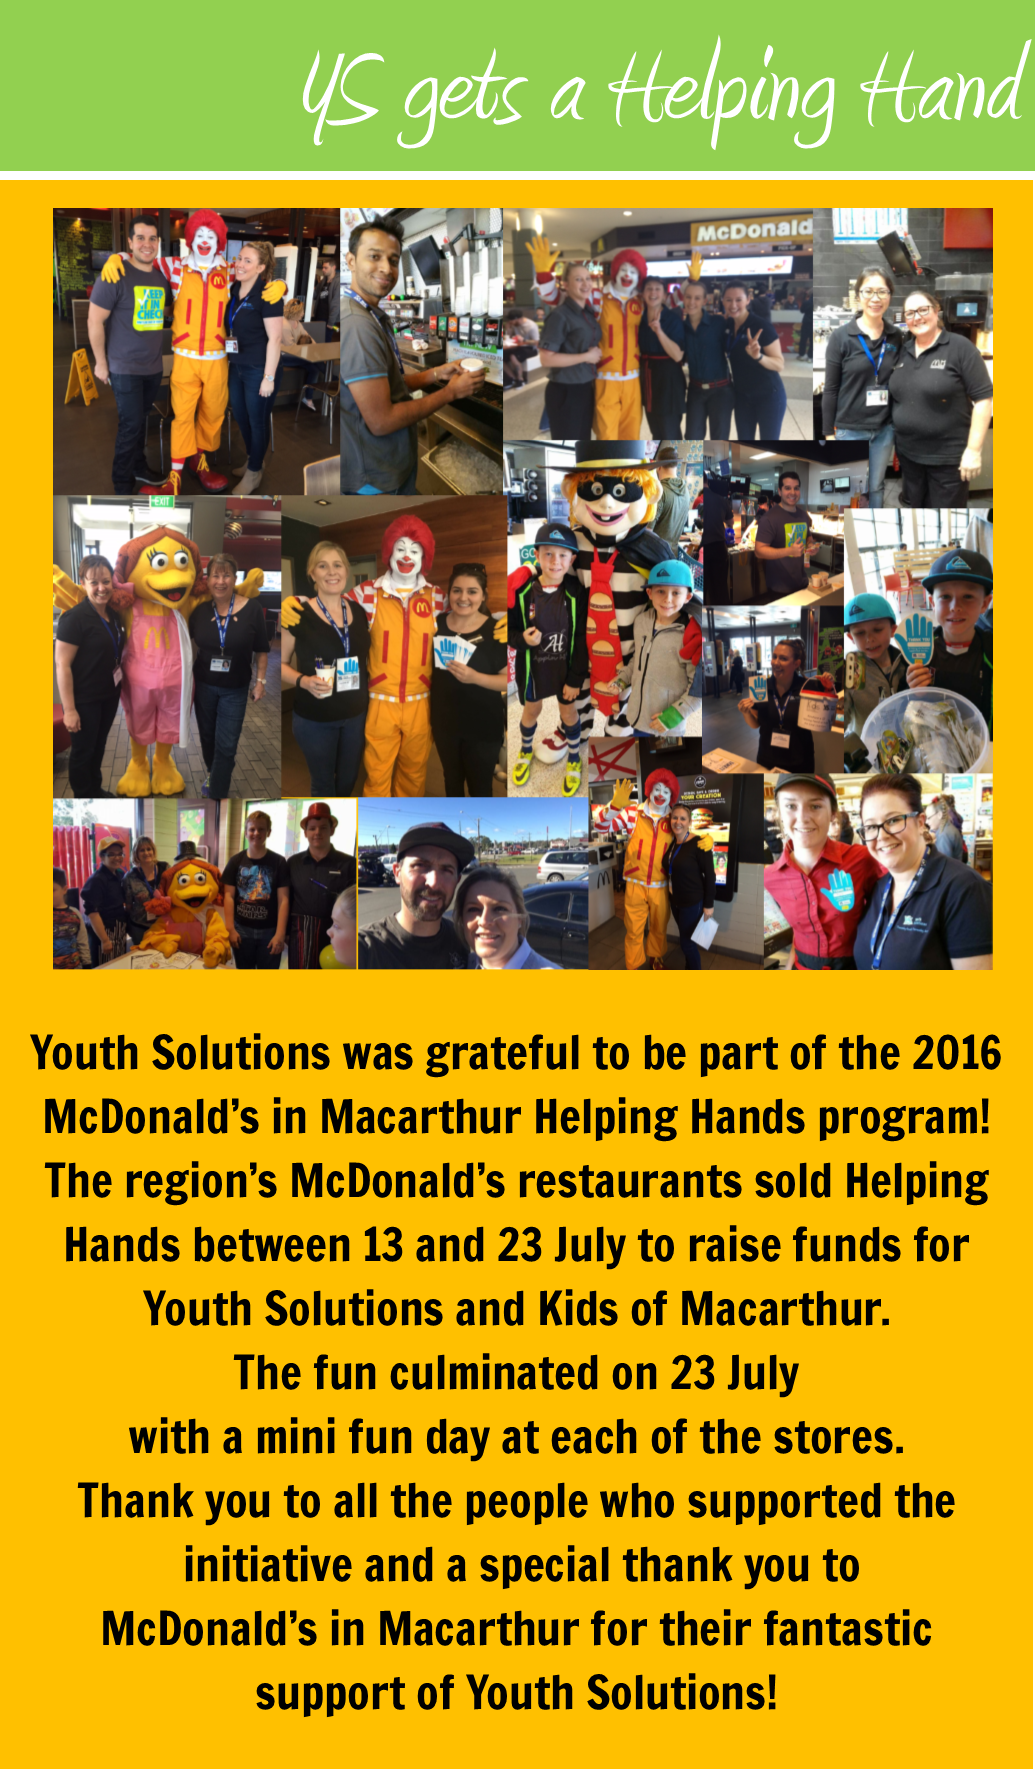 Youth Solutions benefits from McDonald's Helping Hands program